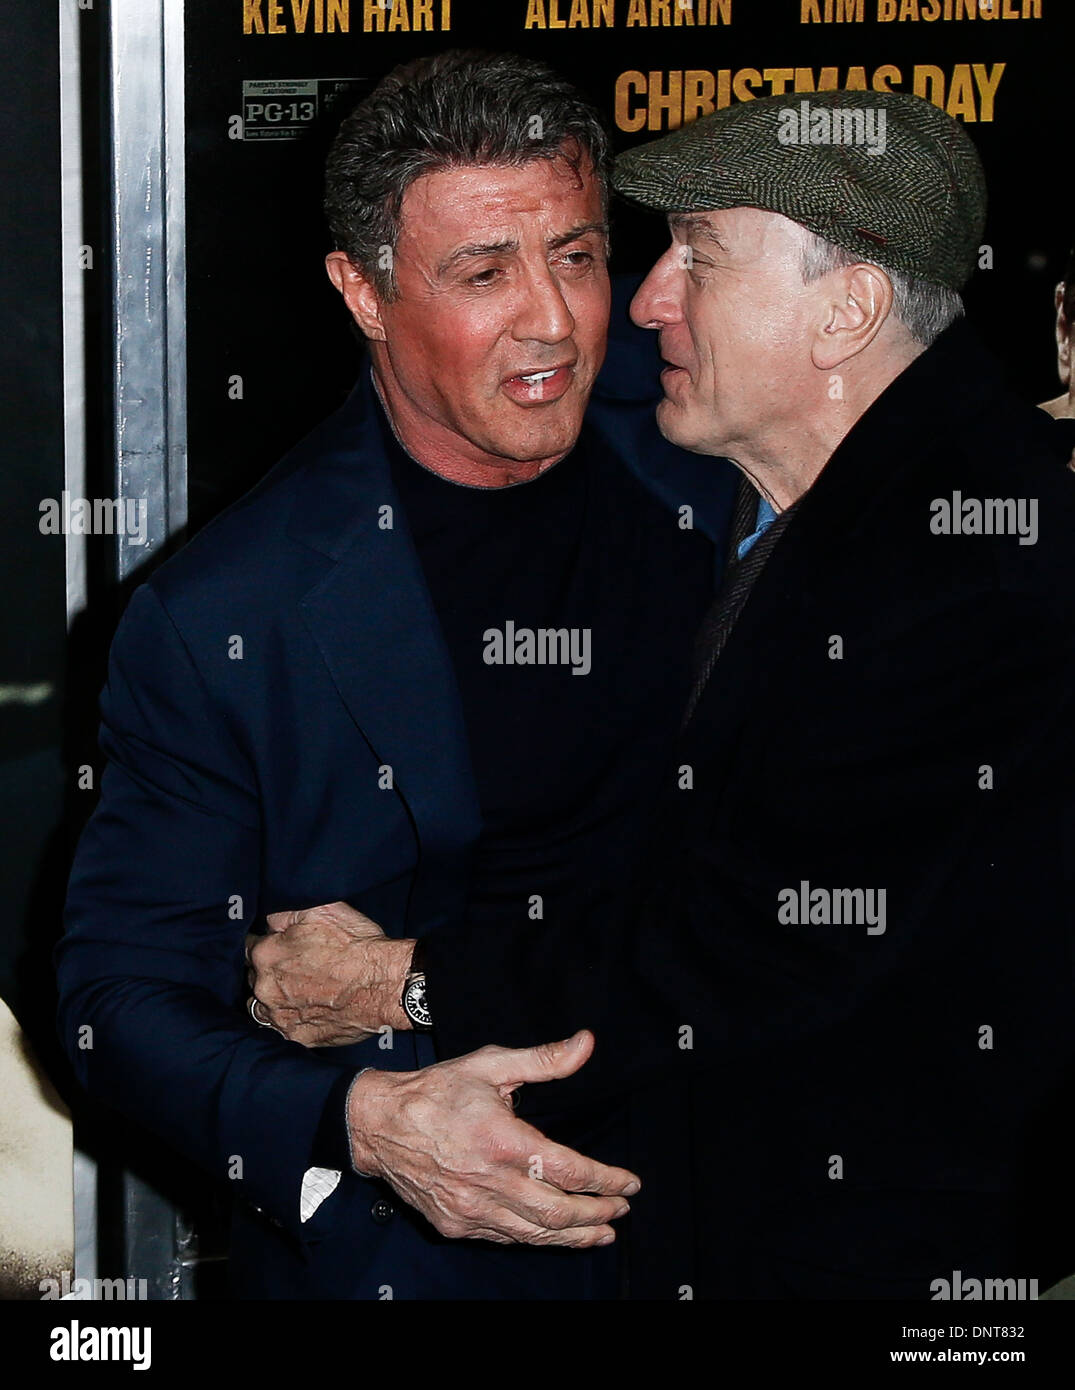 Robert DeNiro (R) and Sylvester Stallone attend the world premiere of 'Grudge Match' at the Ziegfeld Theatre. - Stock Image